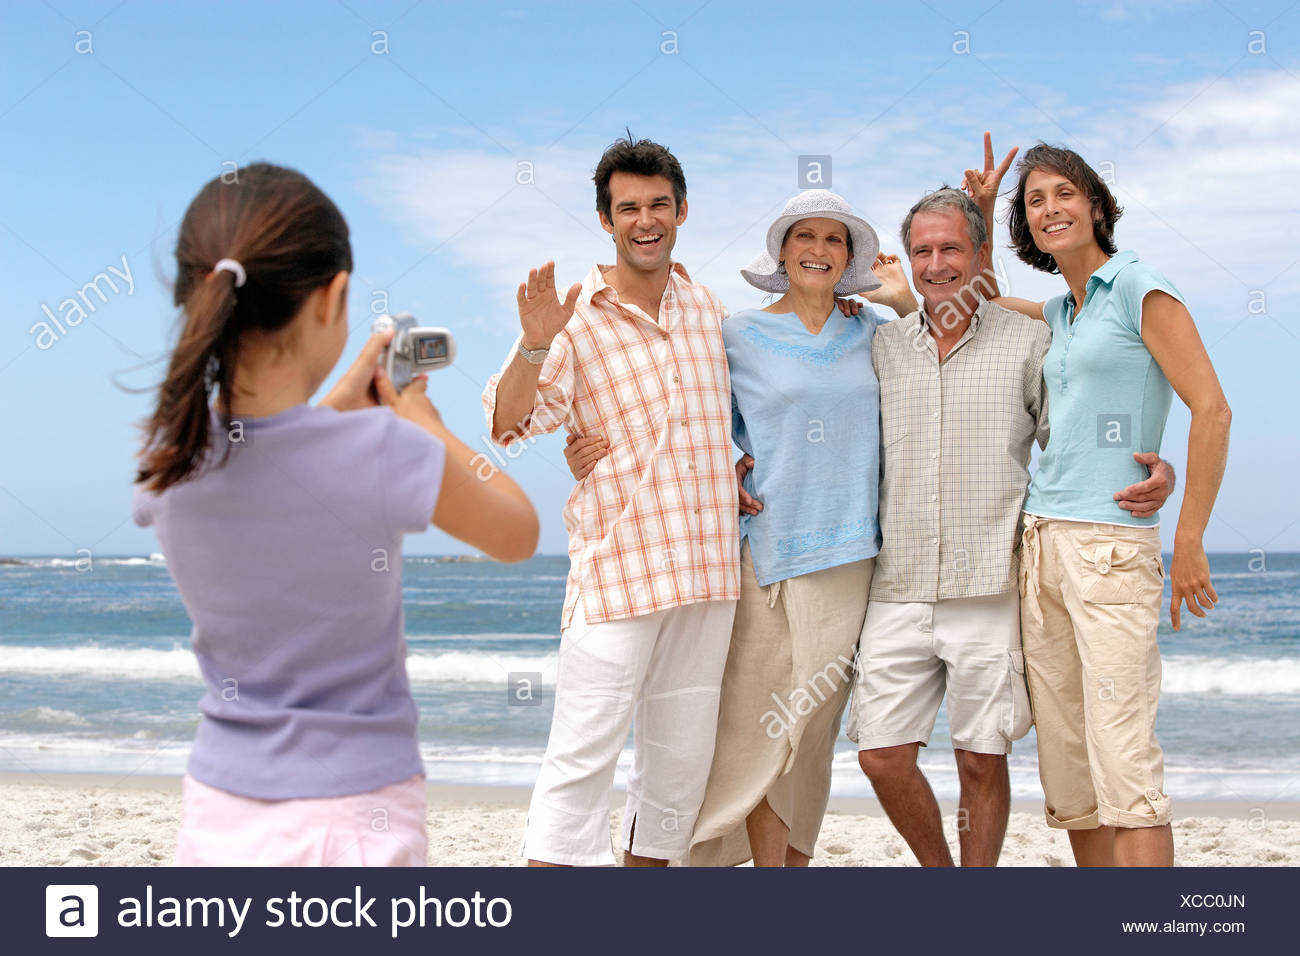 Girl 79 photographier three generation family on beach posing smiling et mer en arrière-plan Photo Stock